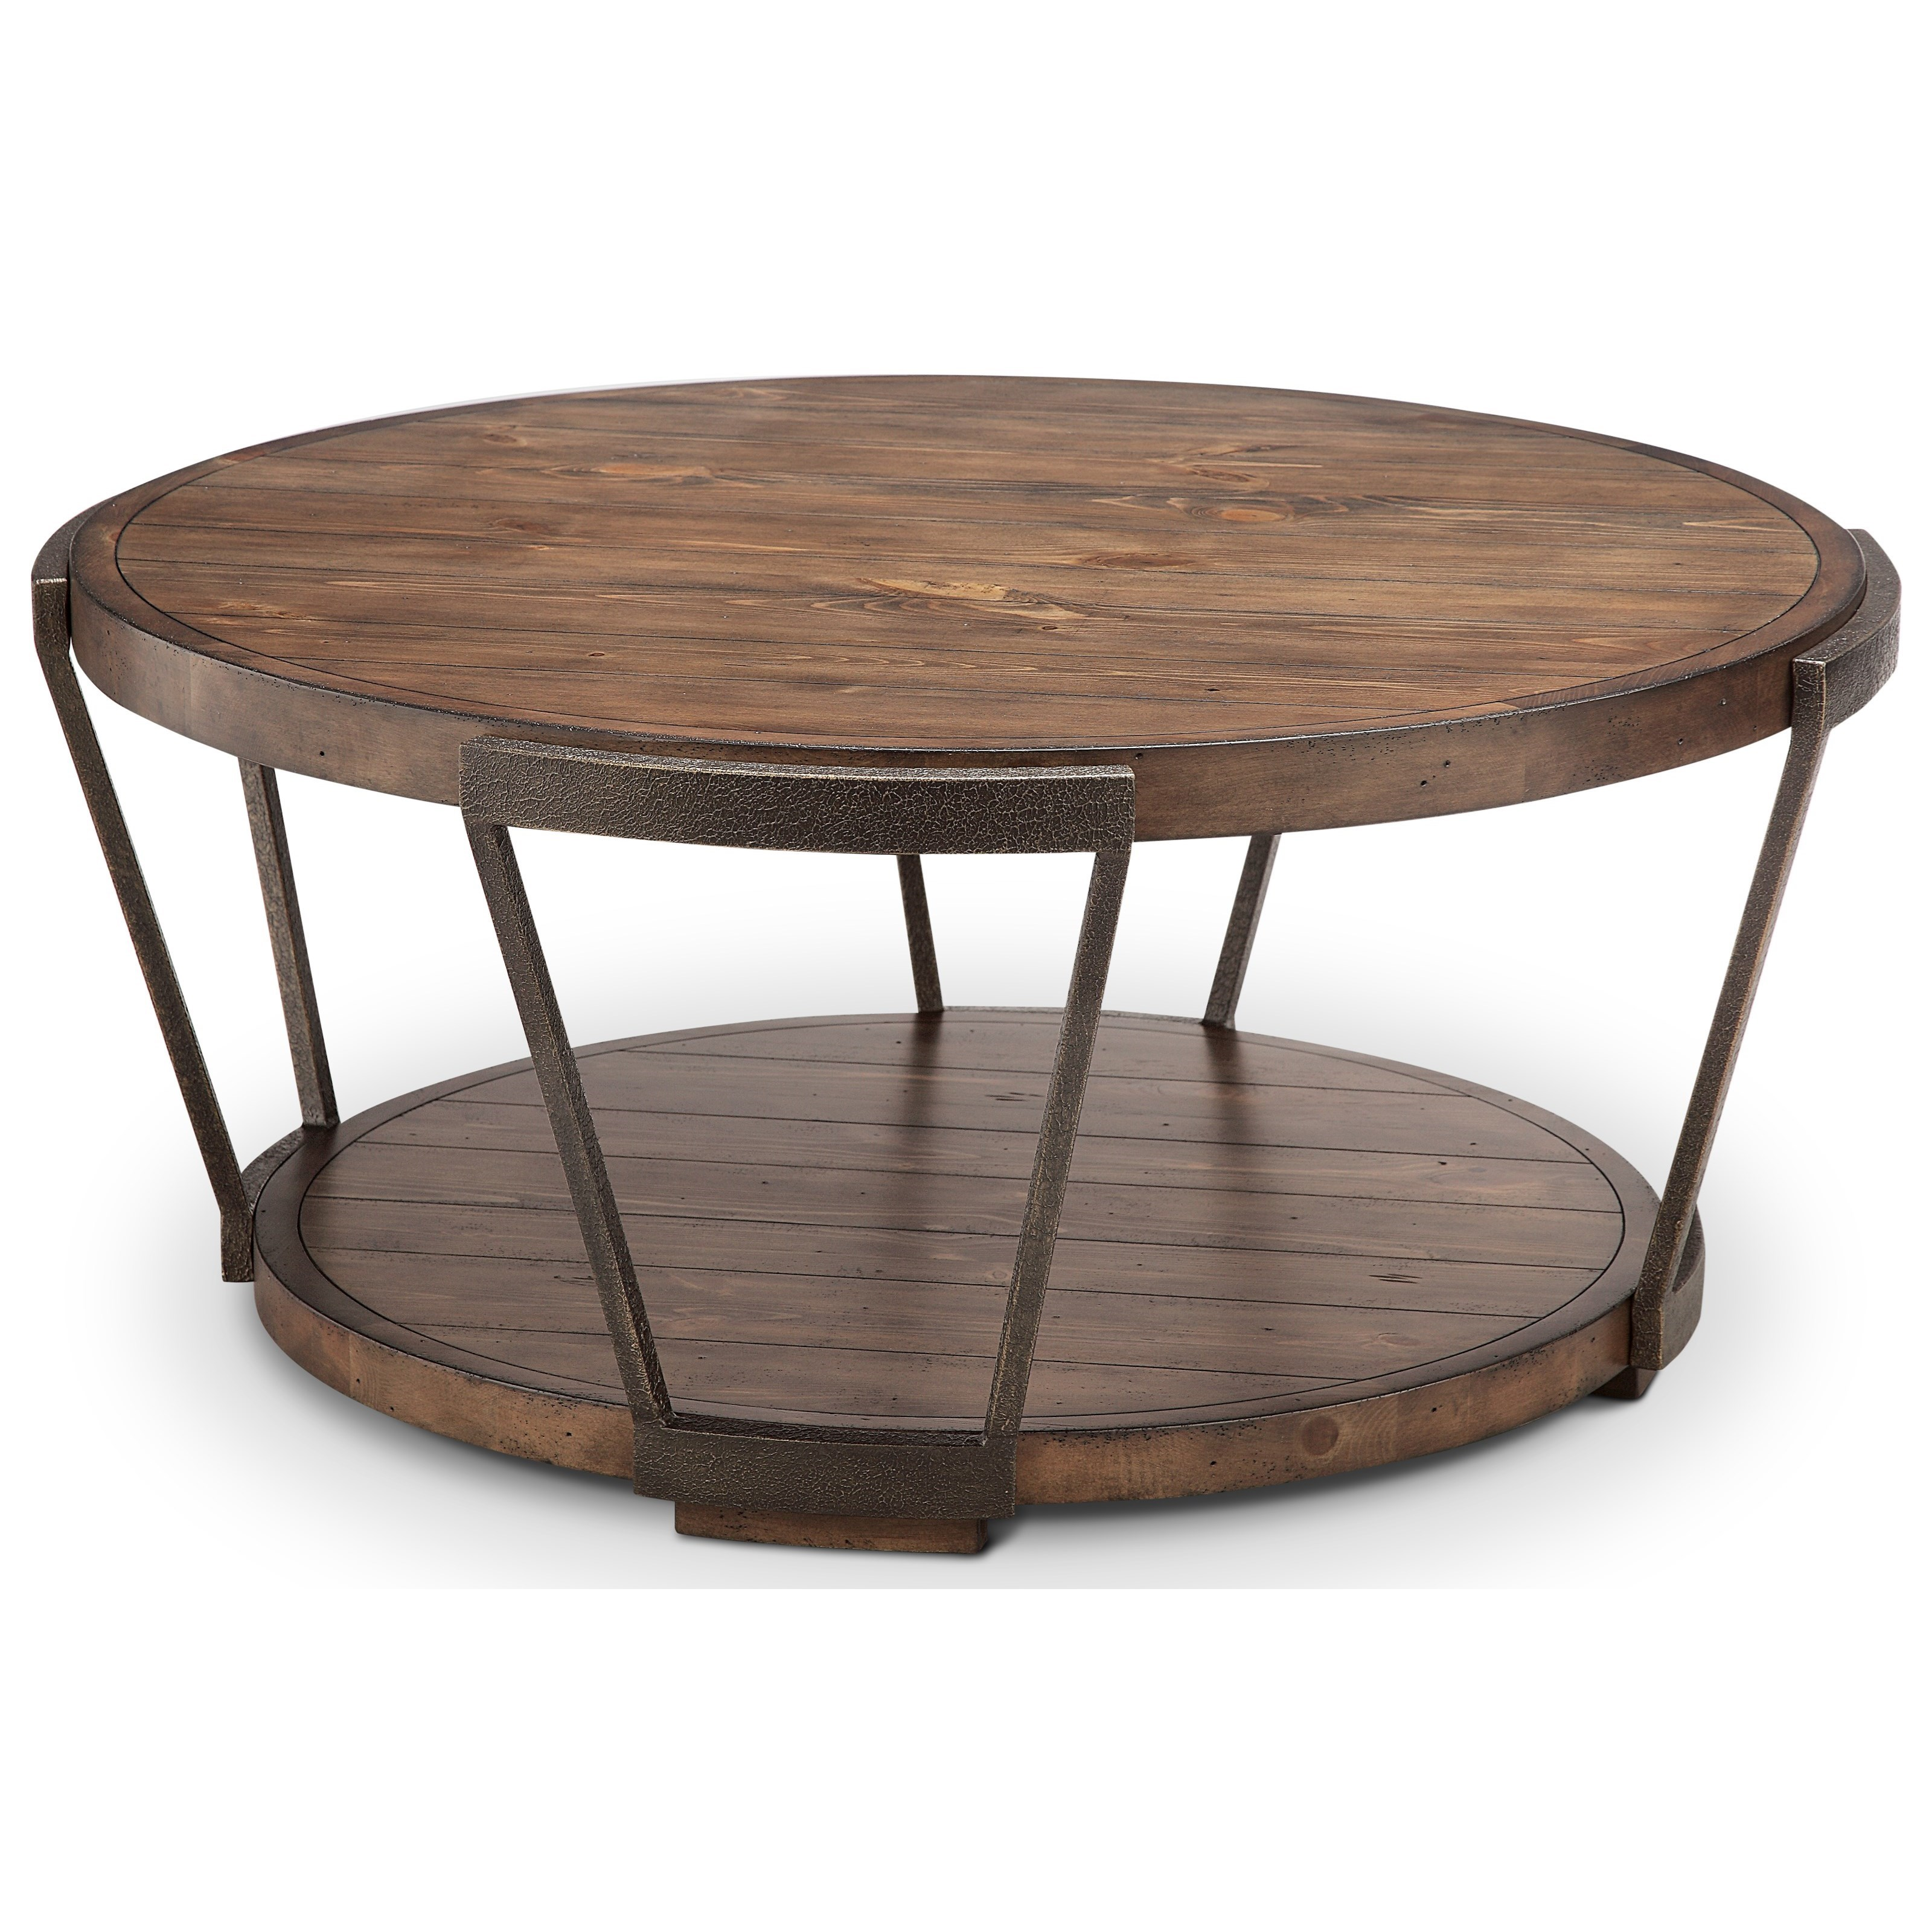 Yukon Round Cocktail Table at Bennett's Furniture and Mattresses